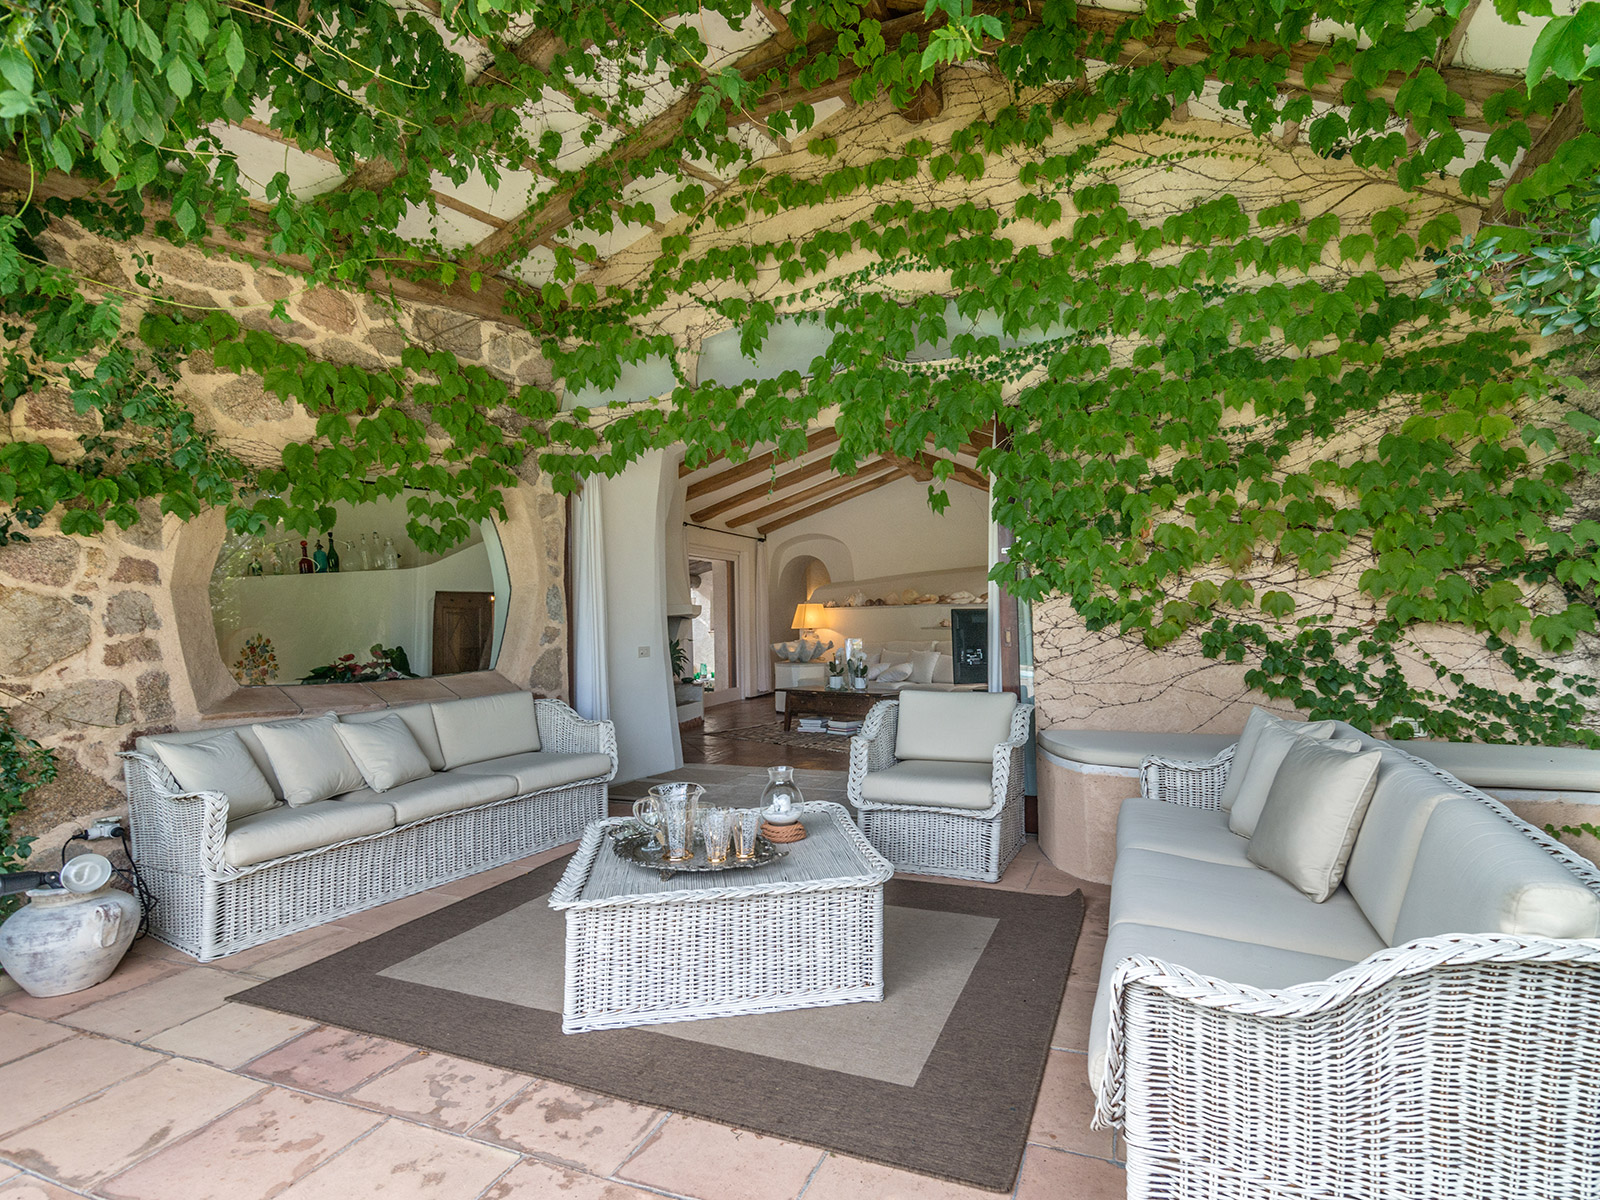 Additional photo for property listing at Magnificent sardinian style villa with private garden Via degli Stazzi Arzachena, Olbia Tempio 07021 Italy